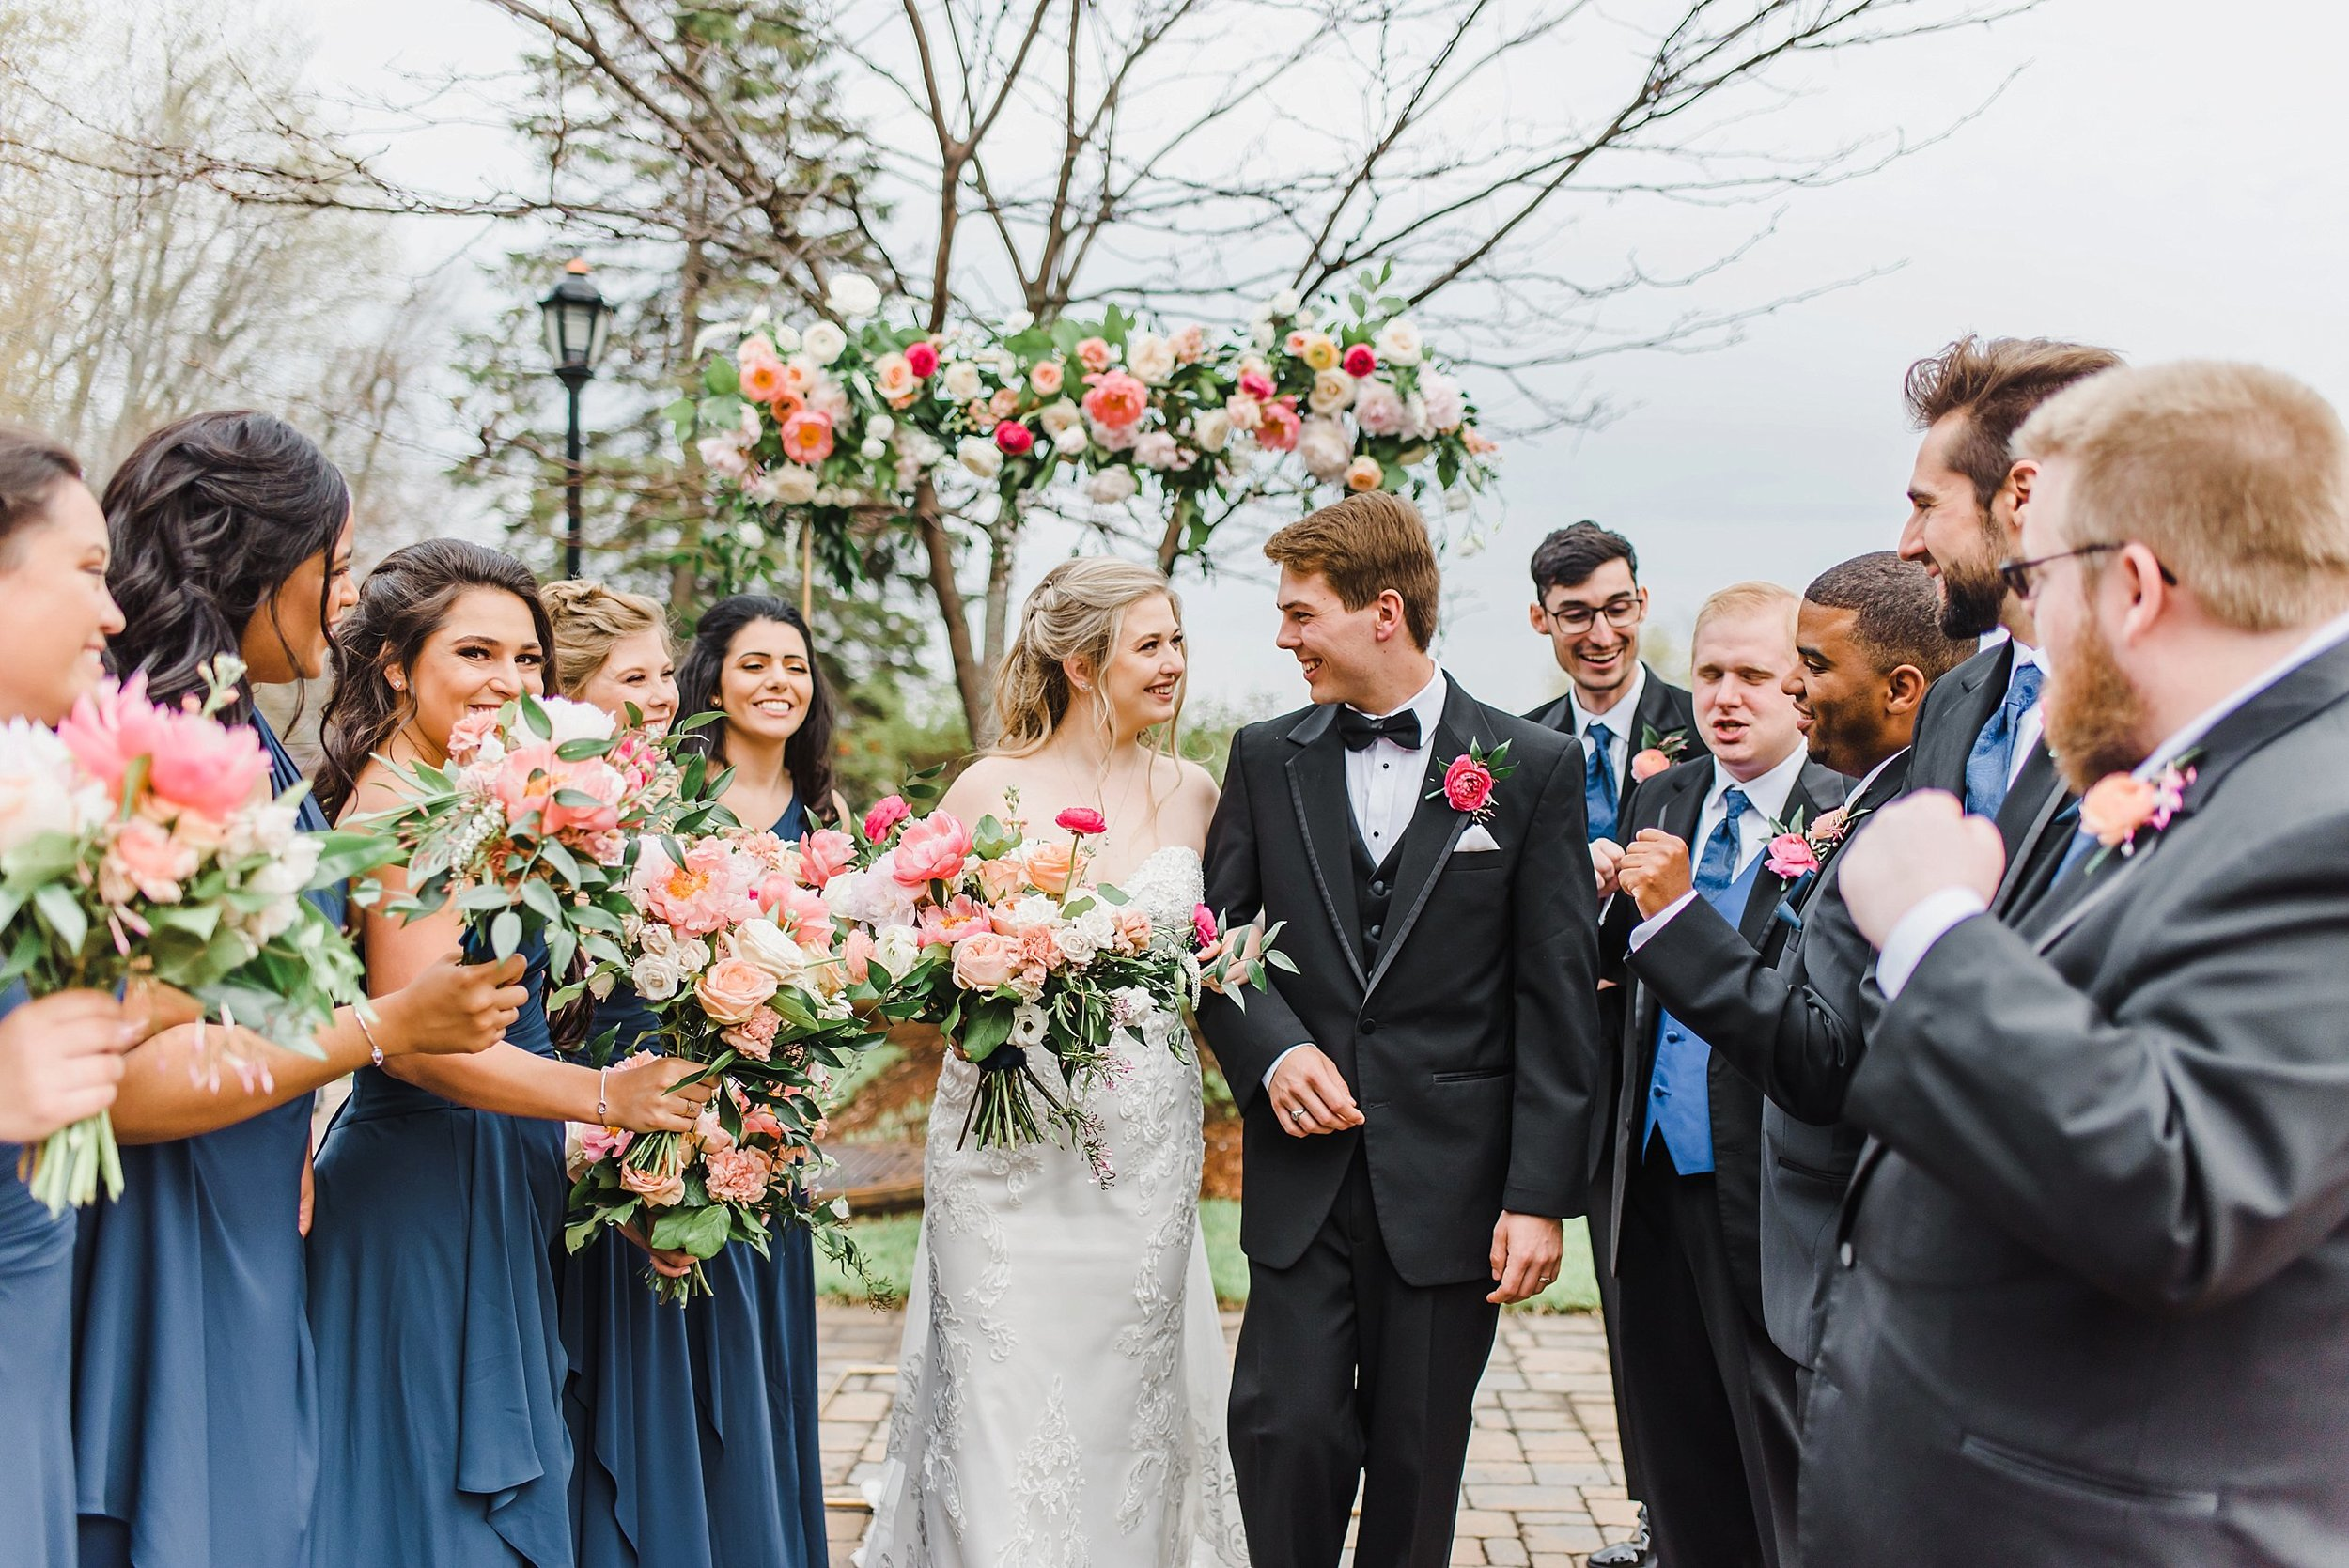 The rain stopped for a few minutes in between the ceremony and reception, so we ran outdoors to get images of the bridal party!